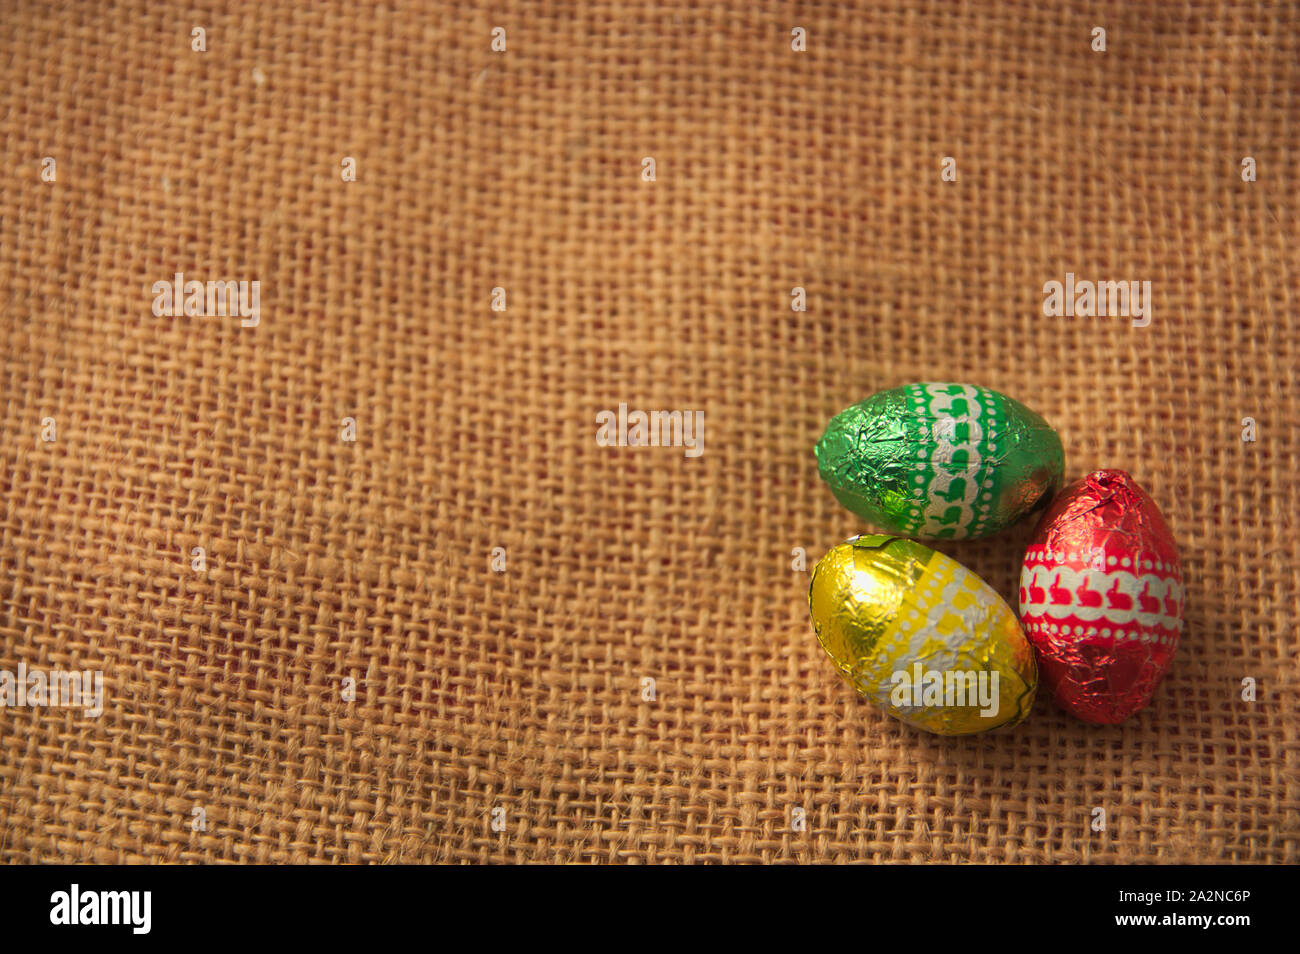 A decorative background for Easter with brightly colored eggs on a brown sackcloth and space to add texts or graphics. Copy Space Stock Photo